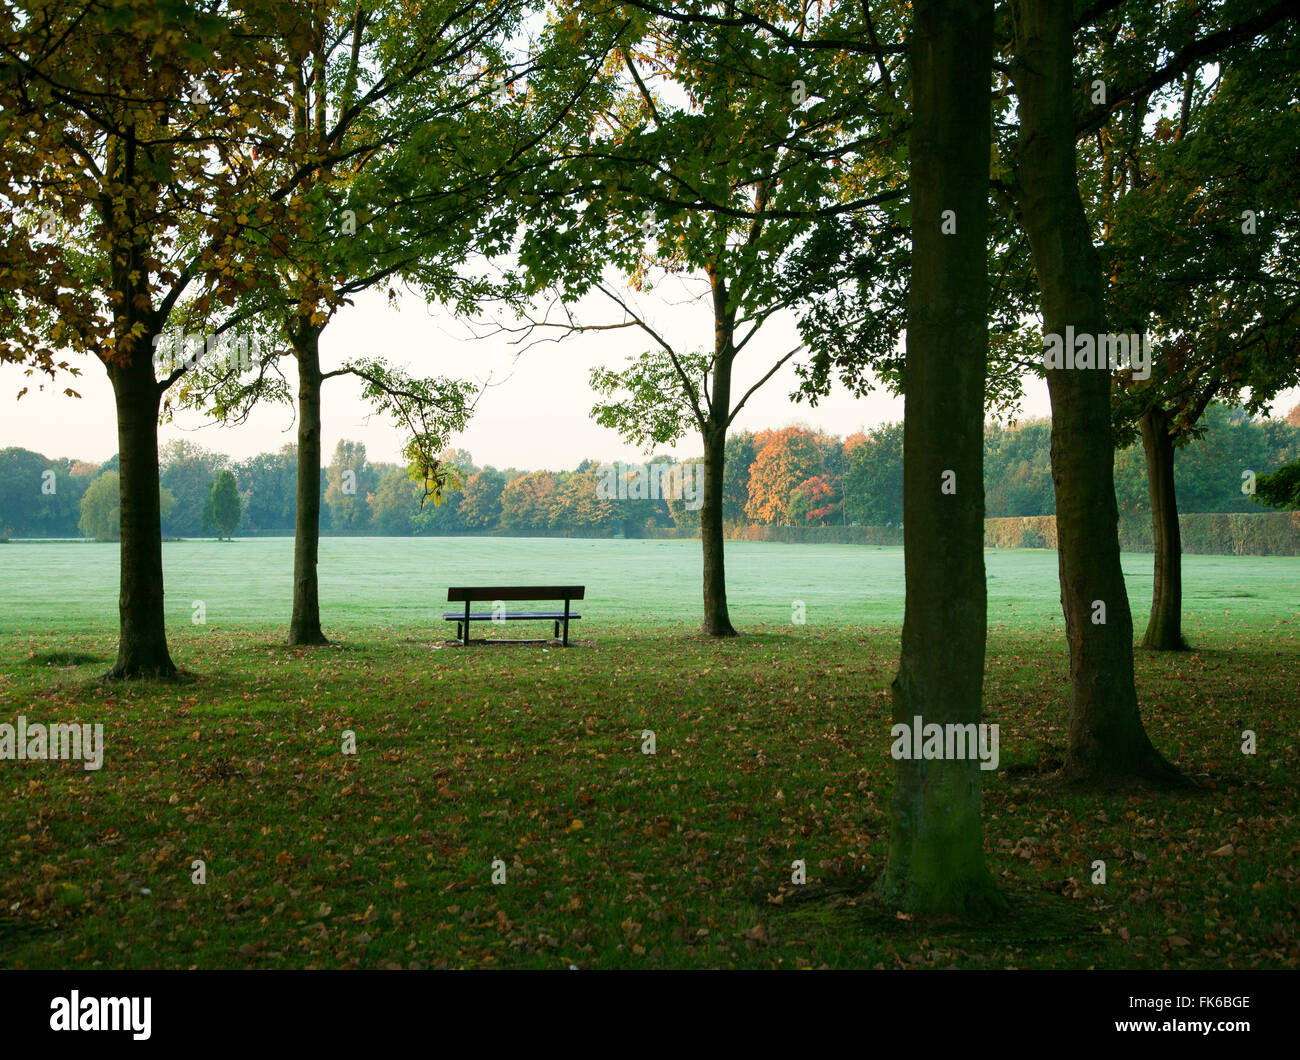 Park bench and trees in autumn, United Kingdom, Europe - Stock Image